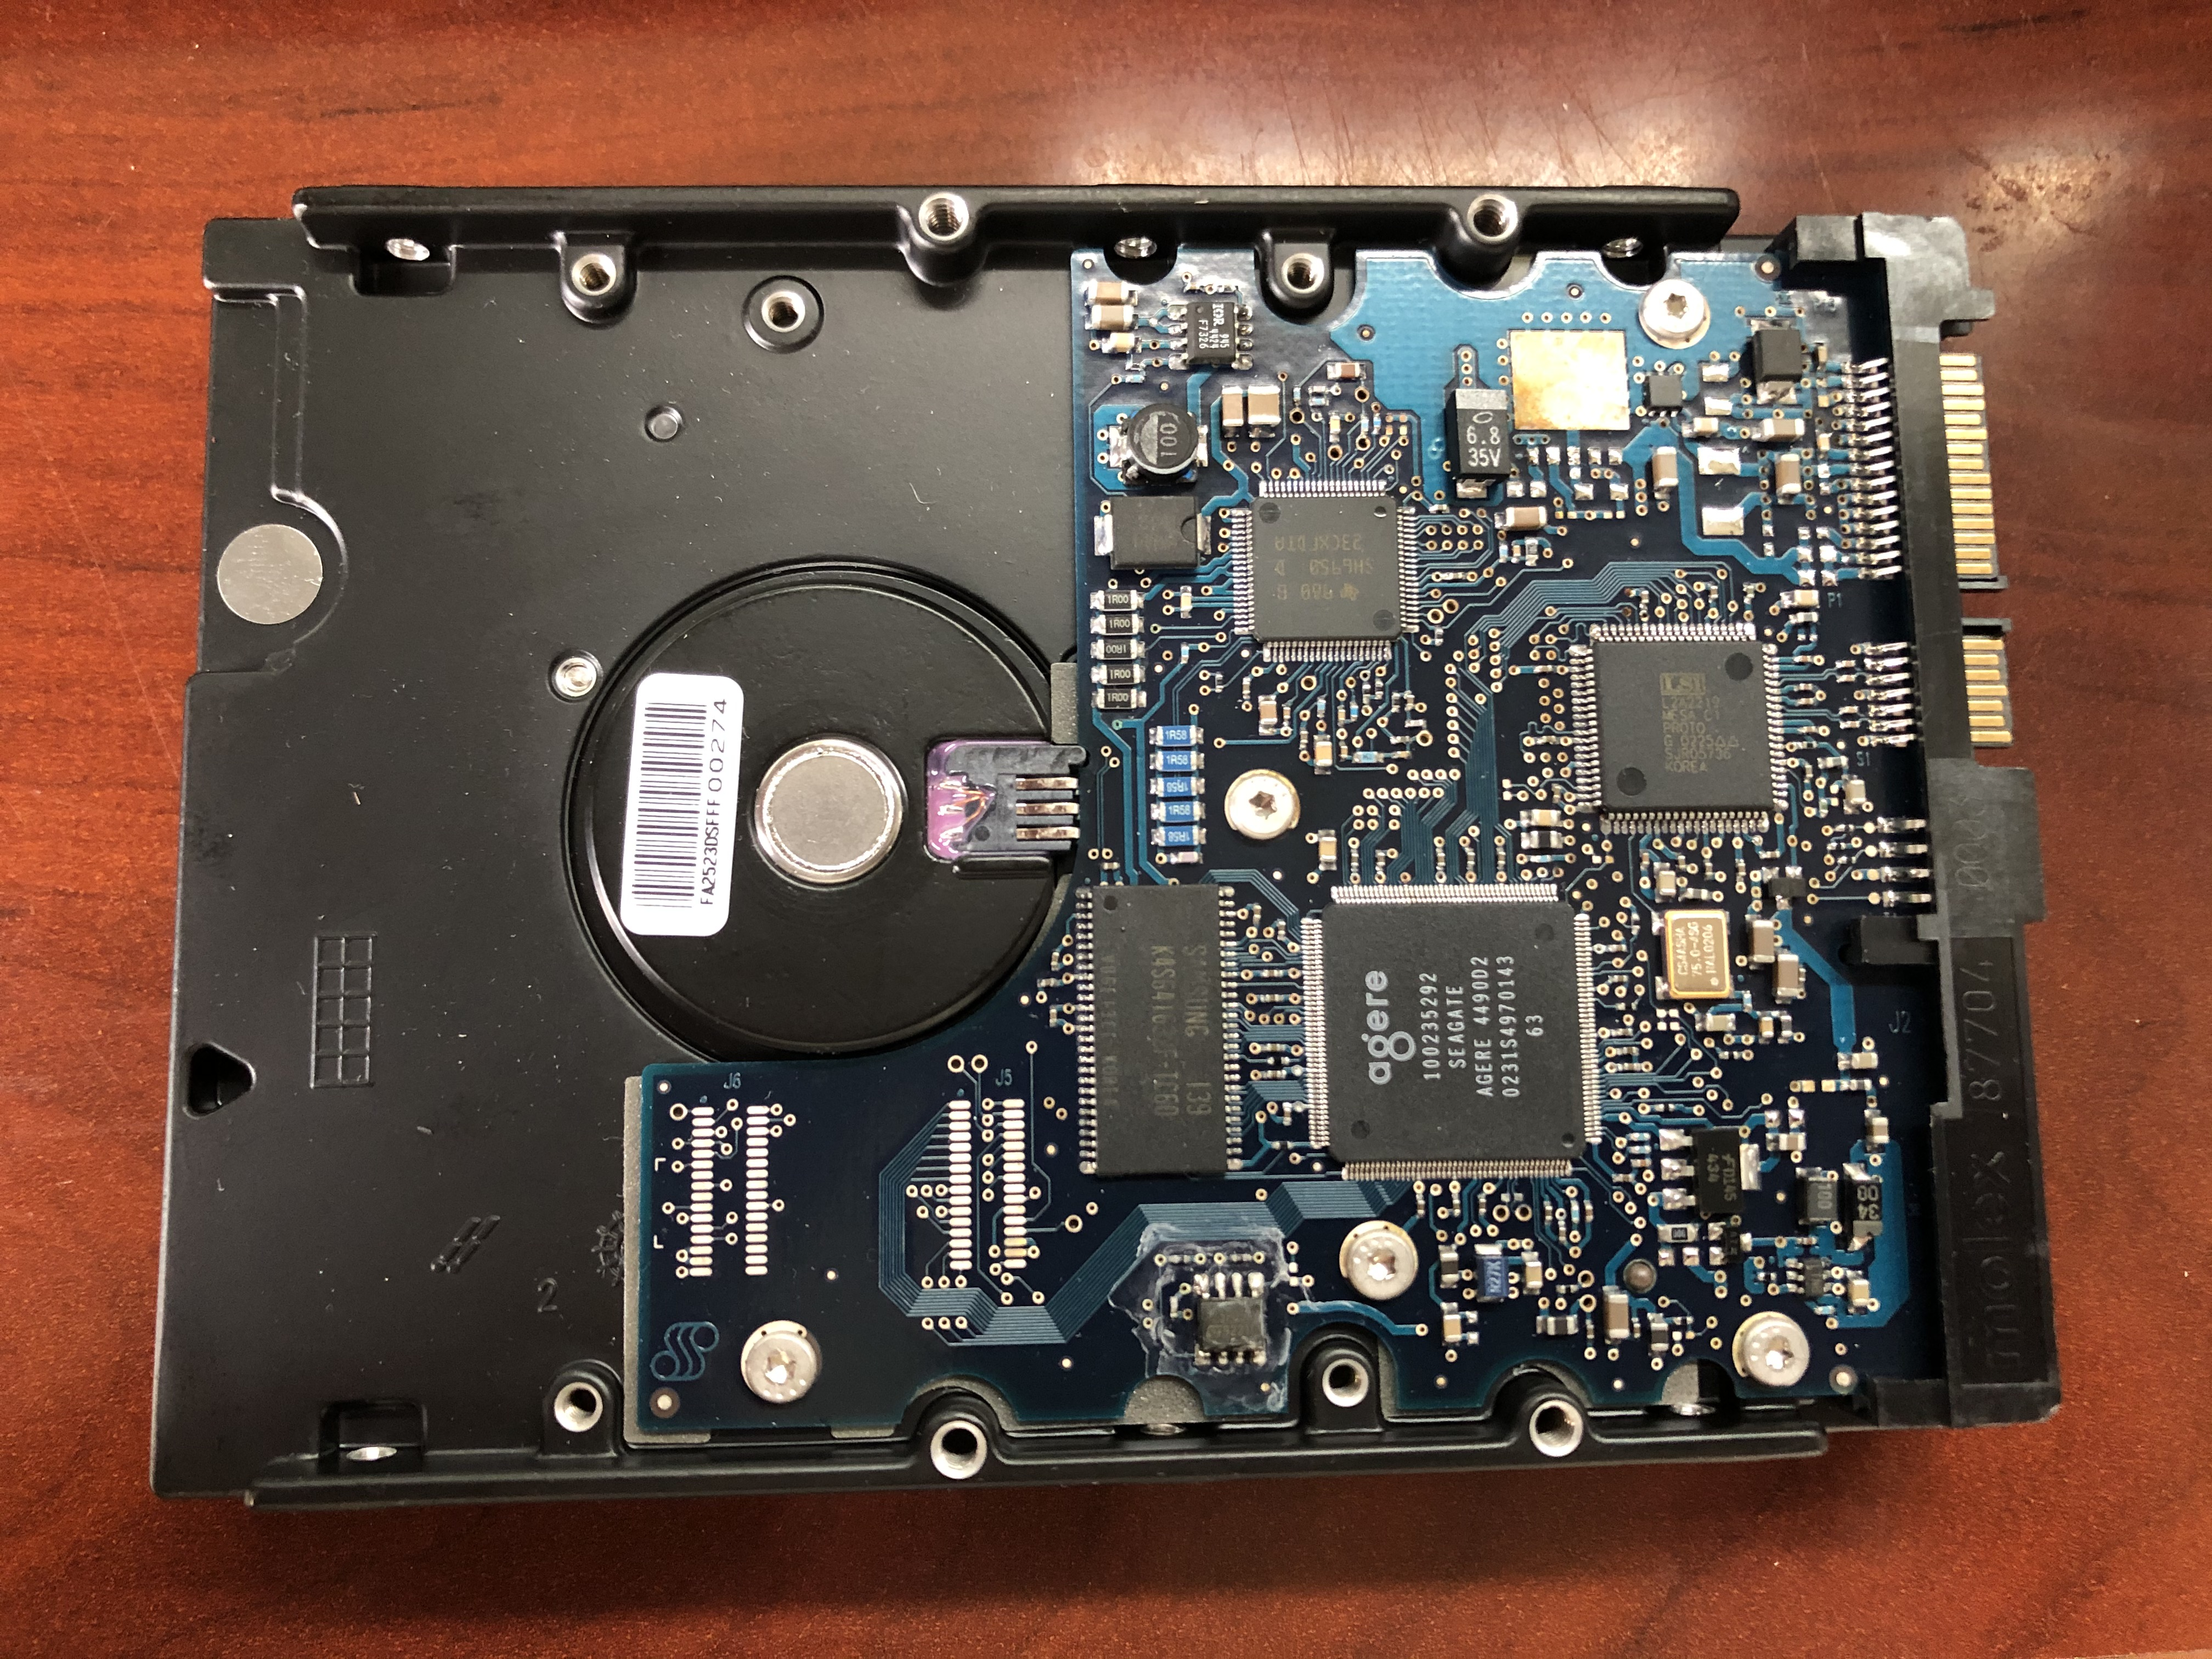 Top view of the first native SATA drive